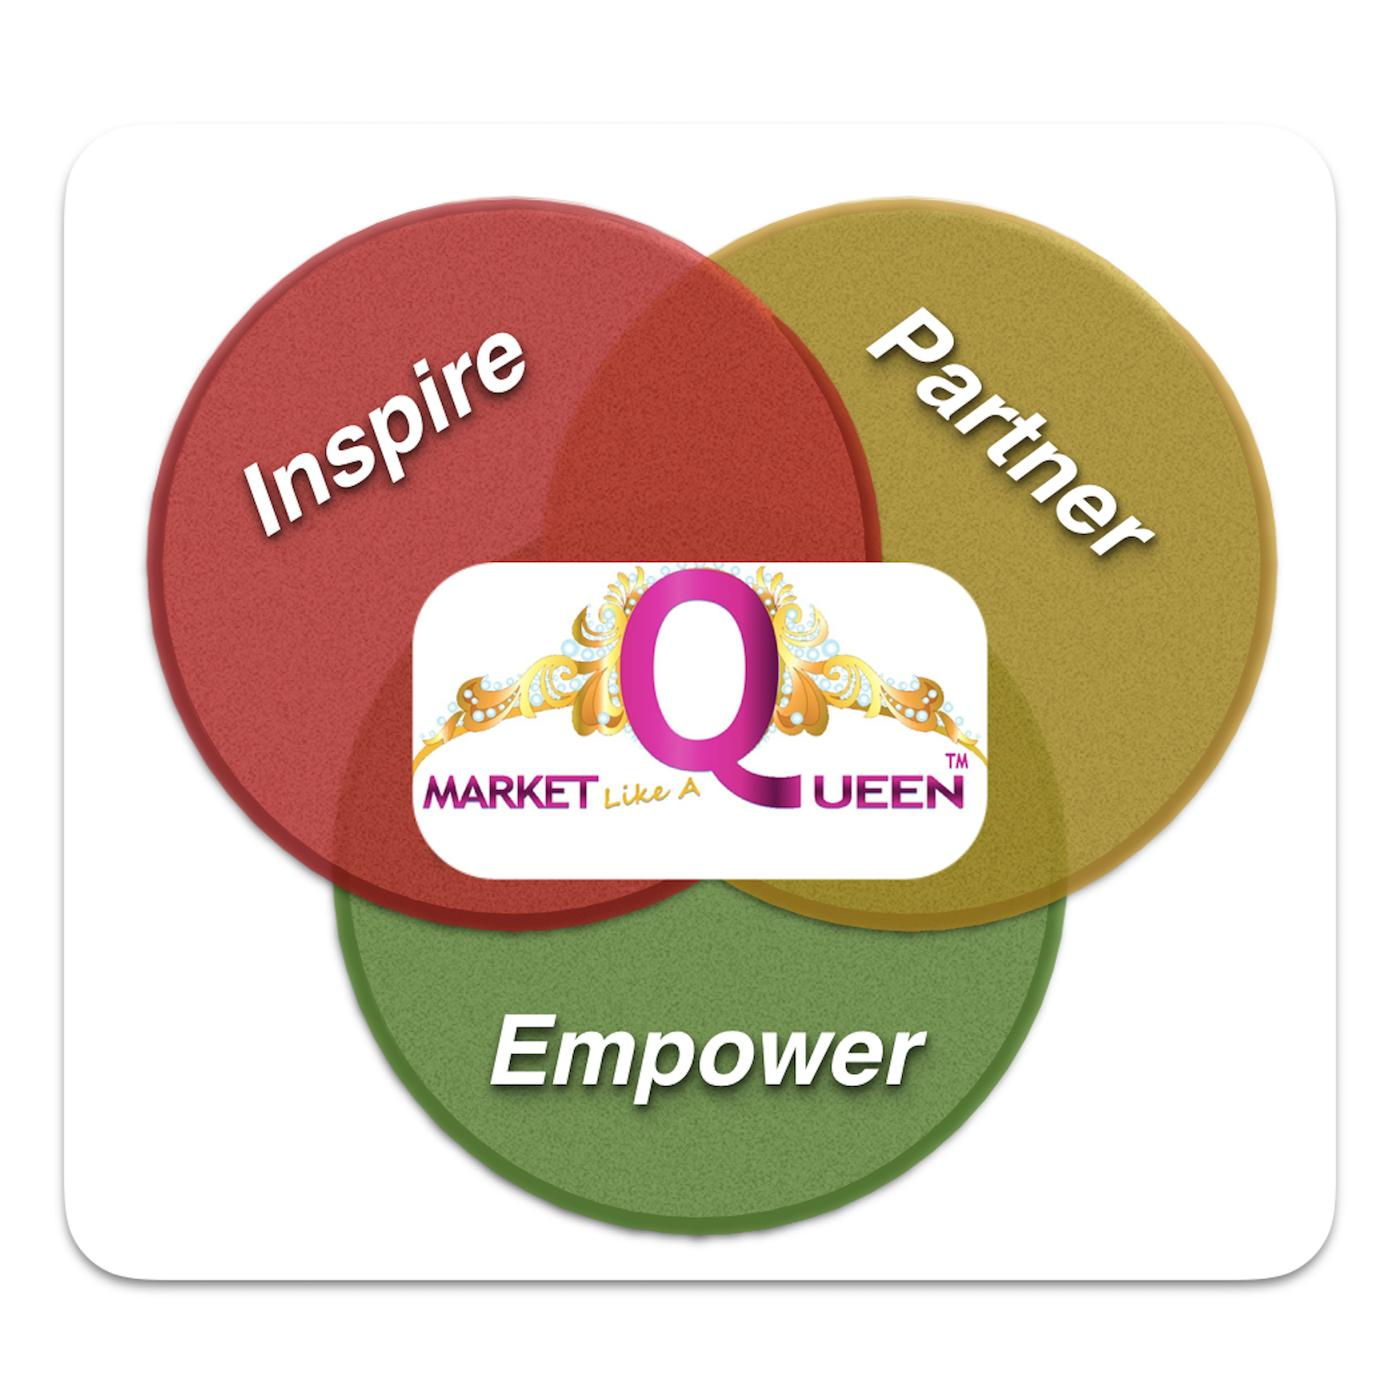 We Inspire. Empower. Partner With Leaders So You Can #MarketLikeAQueen